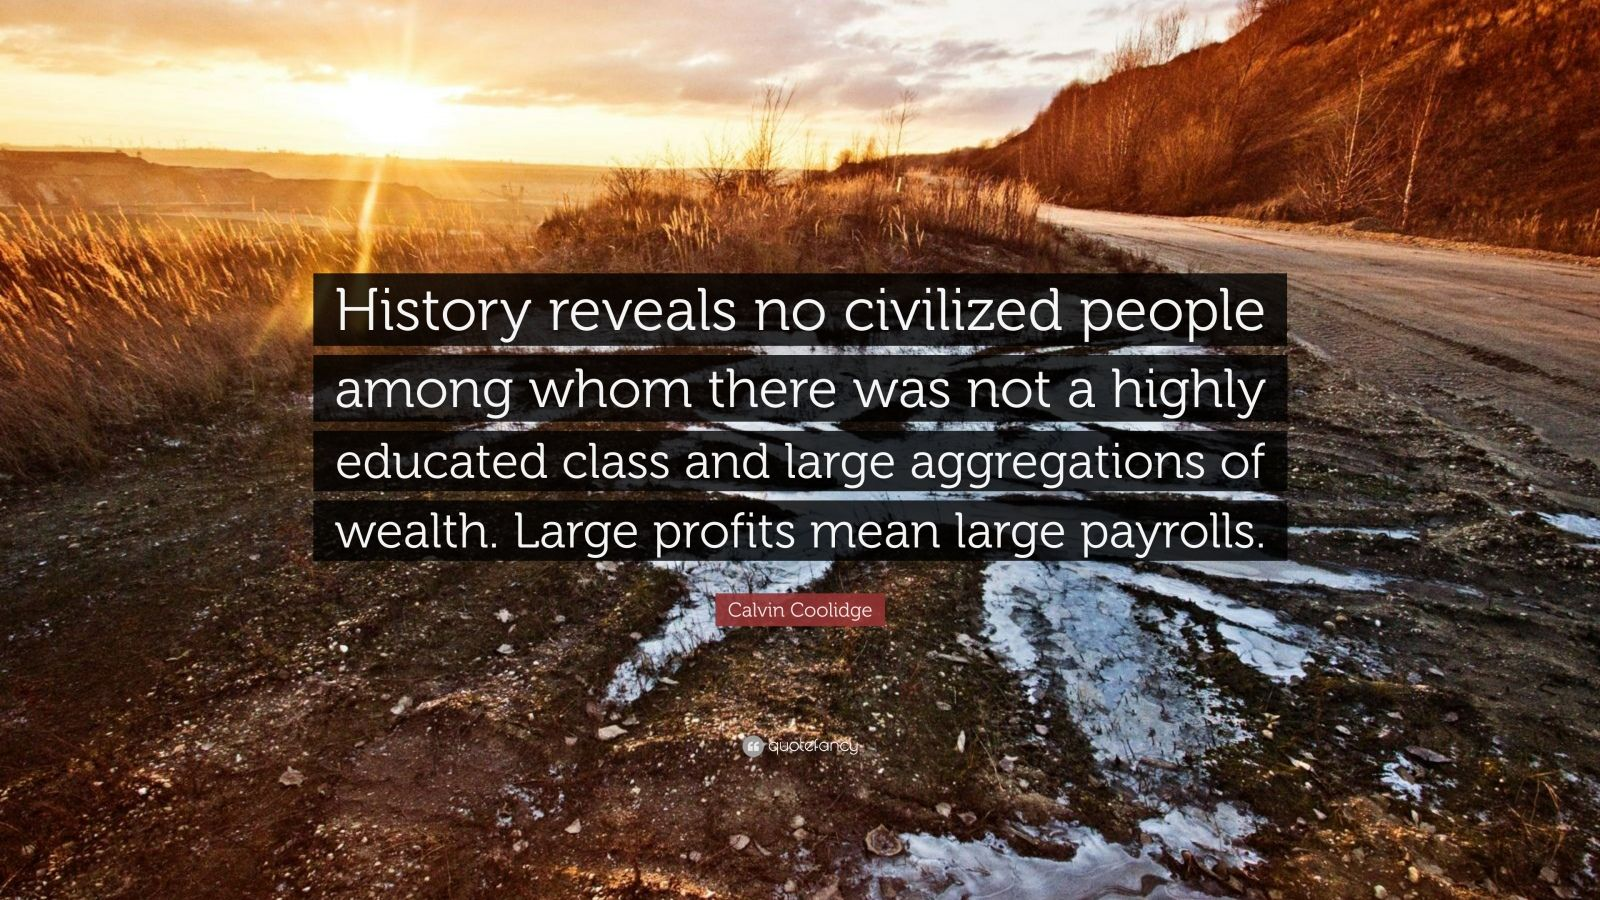 """Calvin Coolidge Quote: """"History reveals no civilized people among whom there was not a highly educated class and large aggregations of wealth. Large profits mean large payrolls."""""""